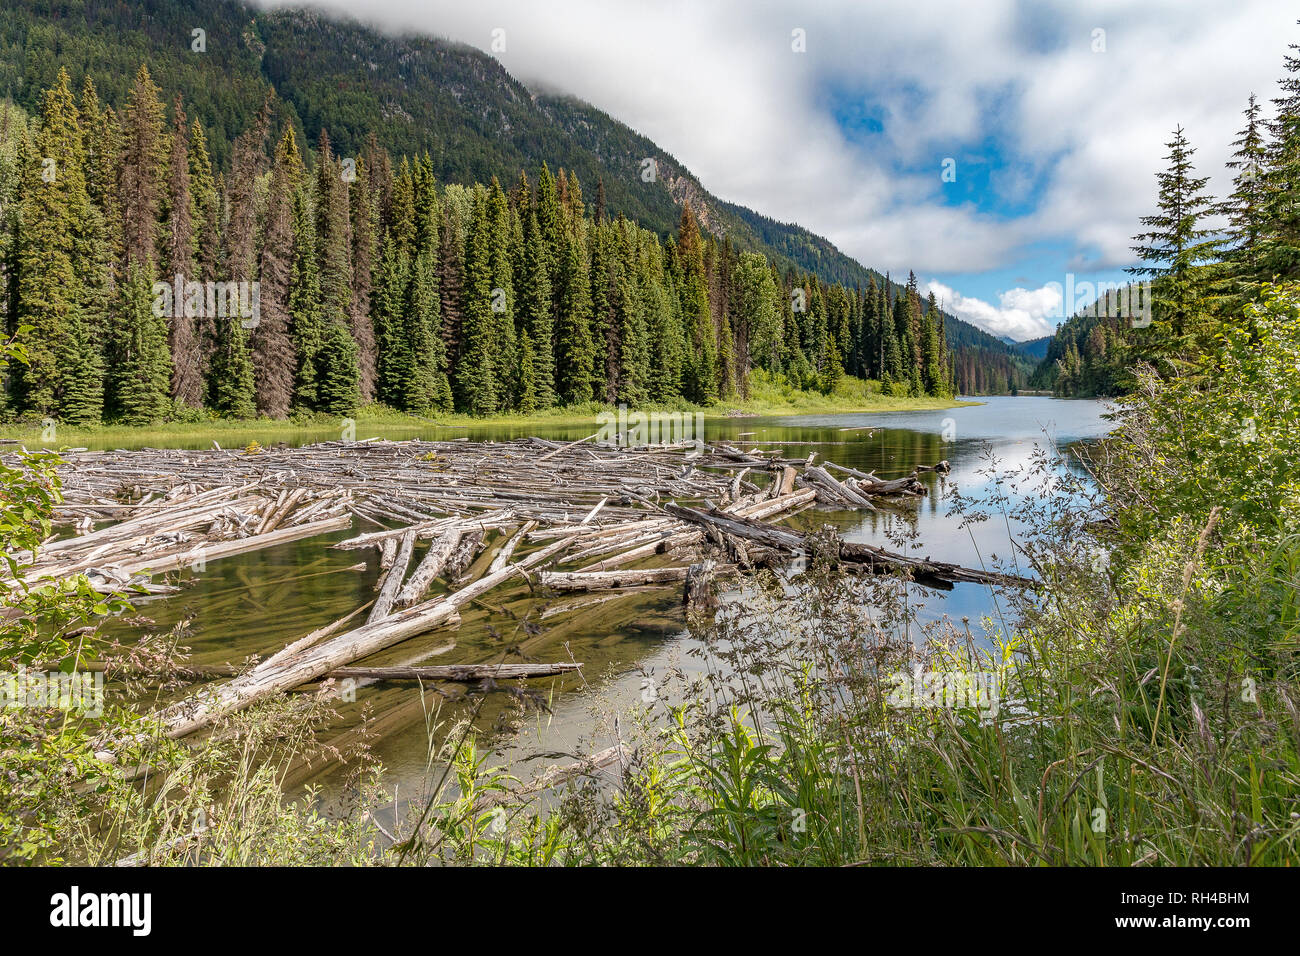 Canadian landscape scene with river, trees and logs - Stock Image